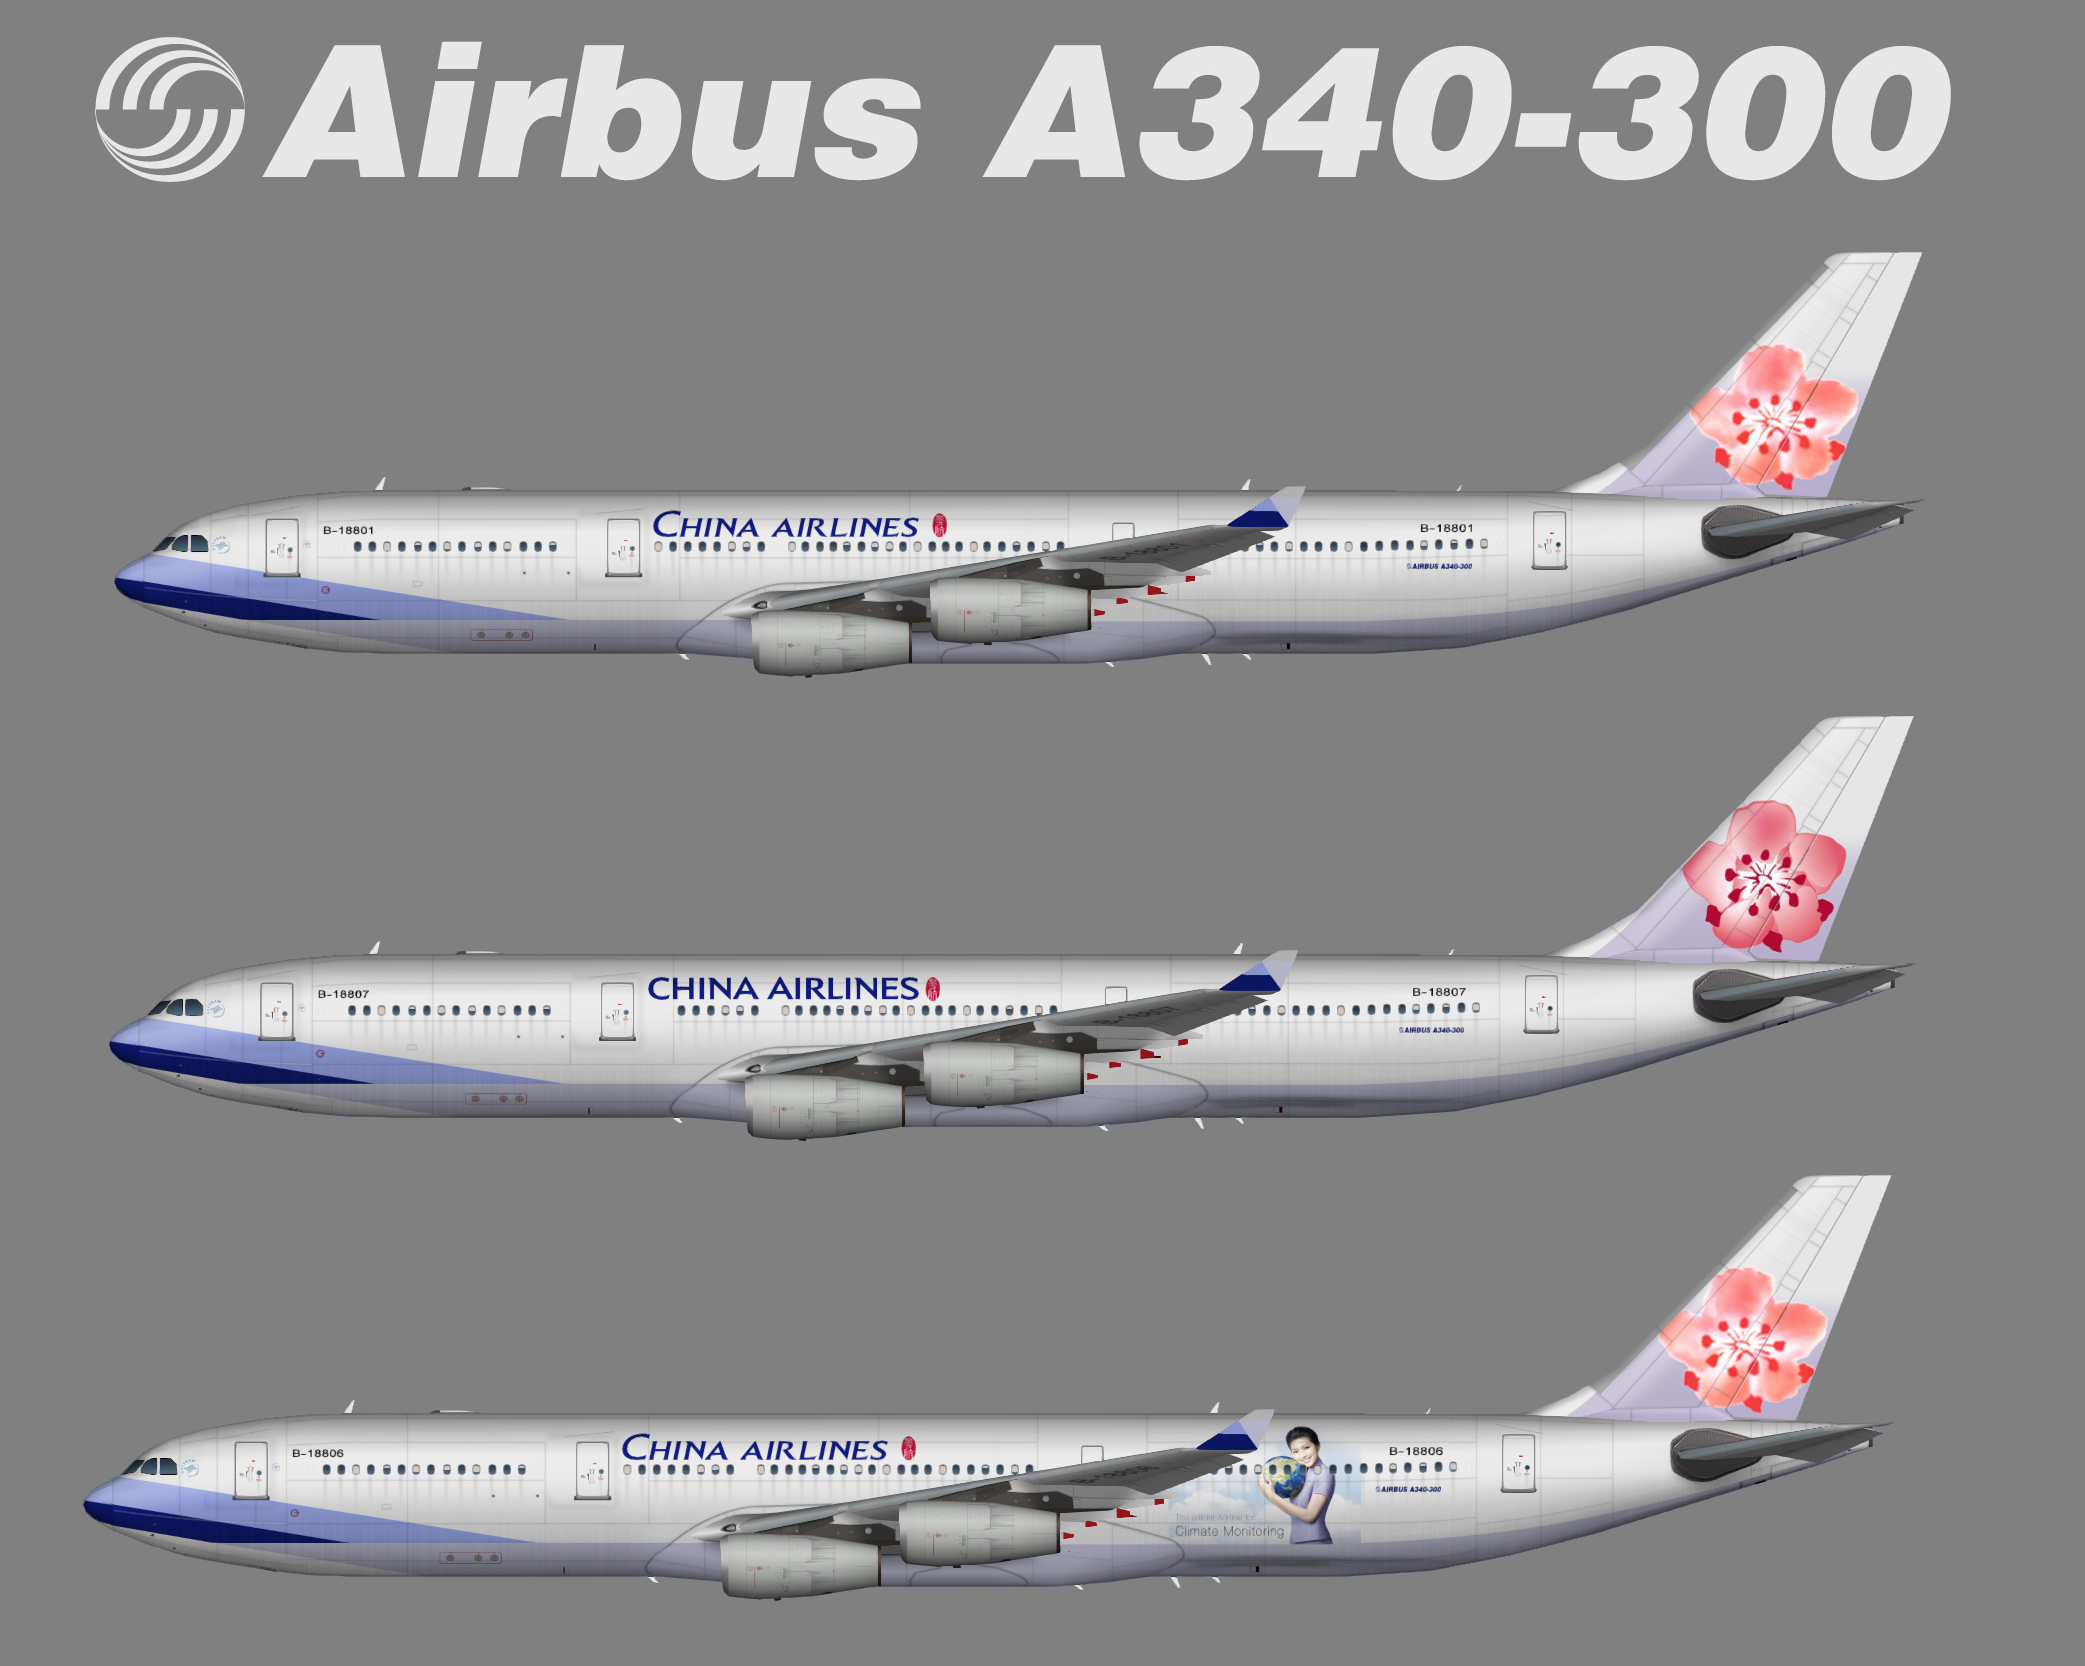 China Airlines Airbus A340-300